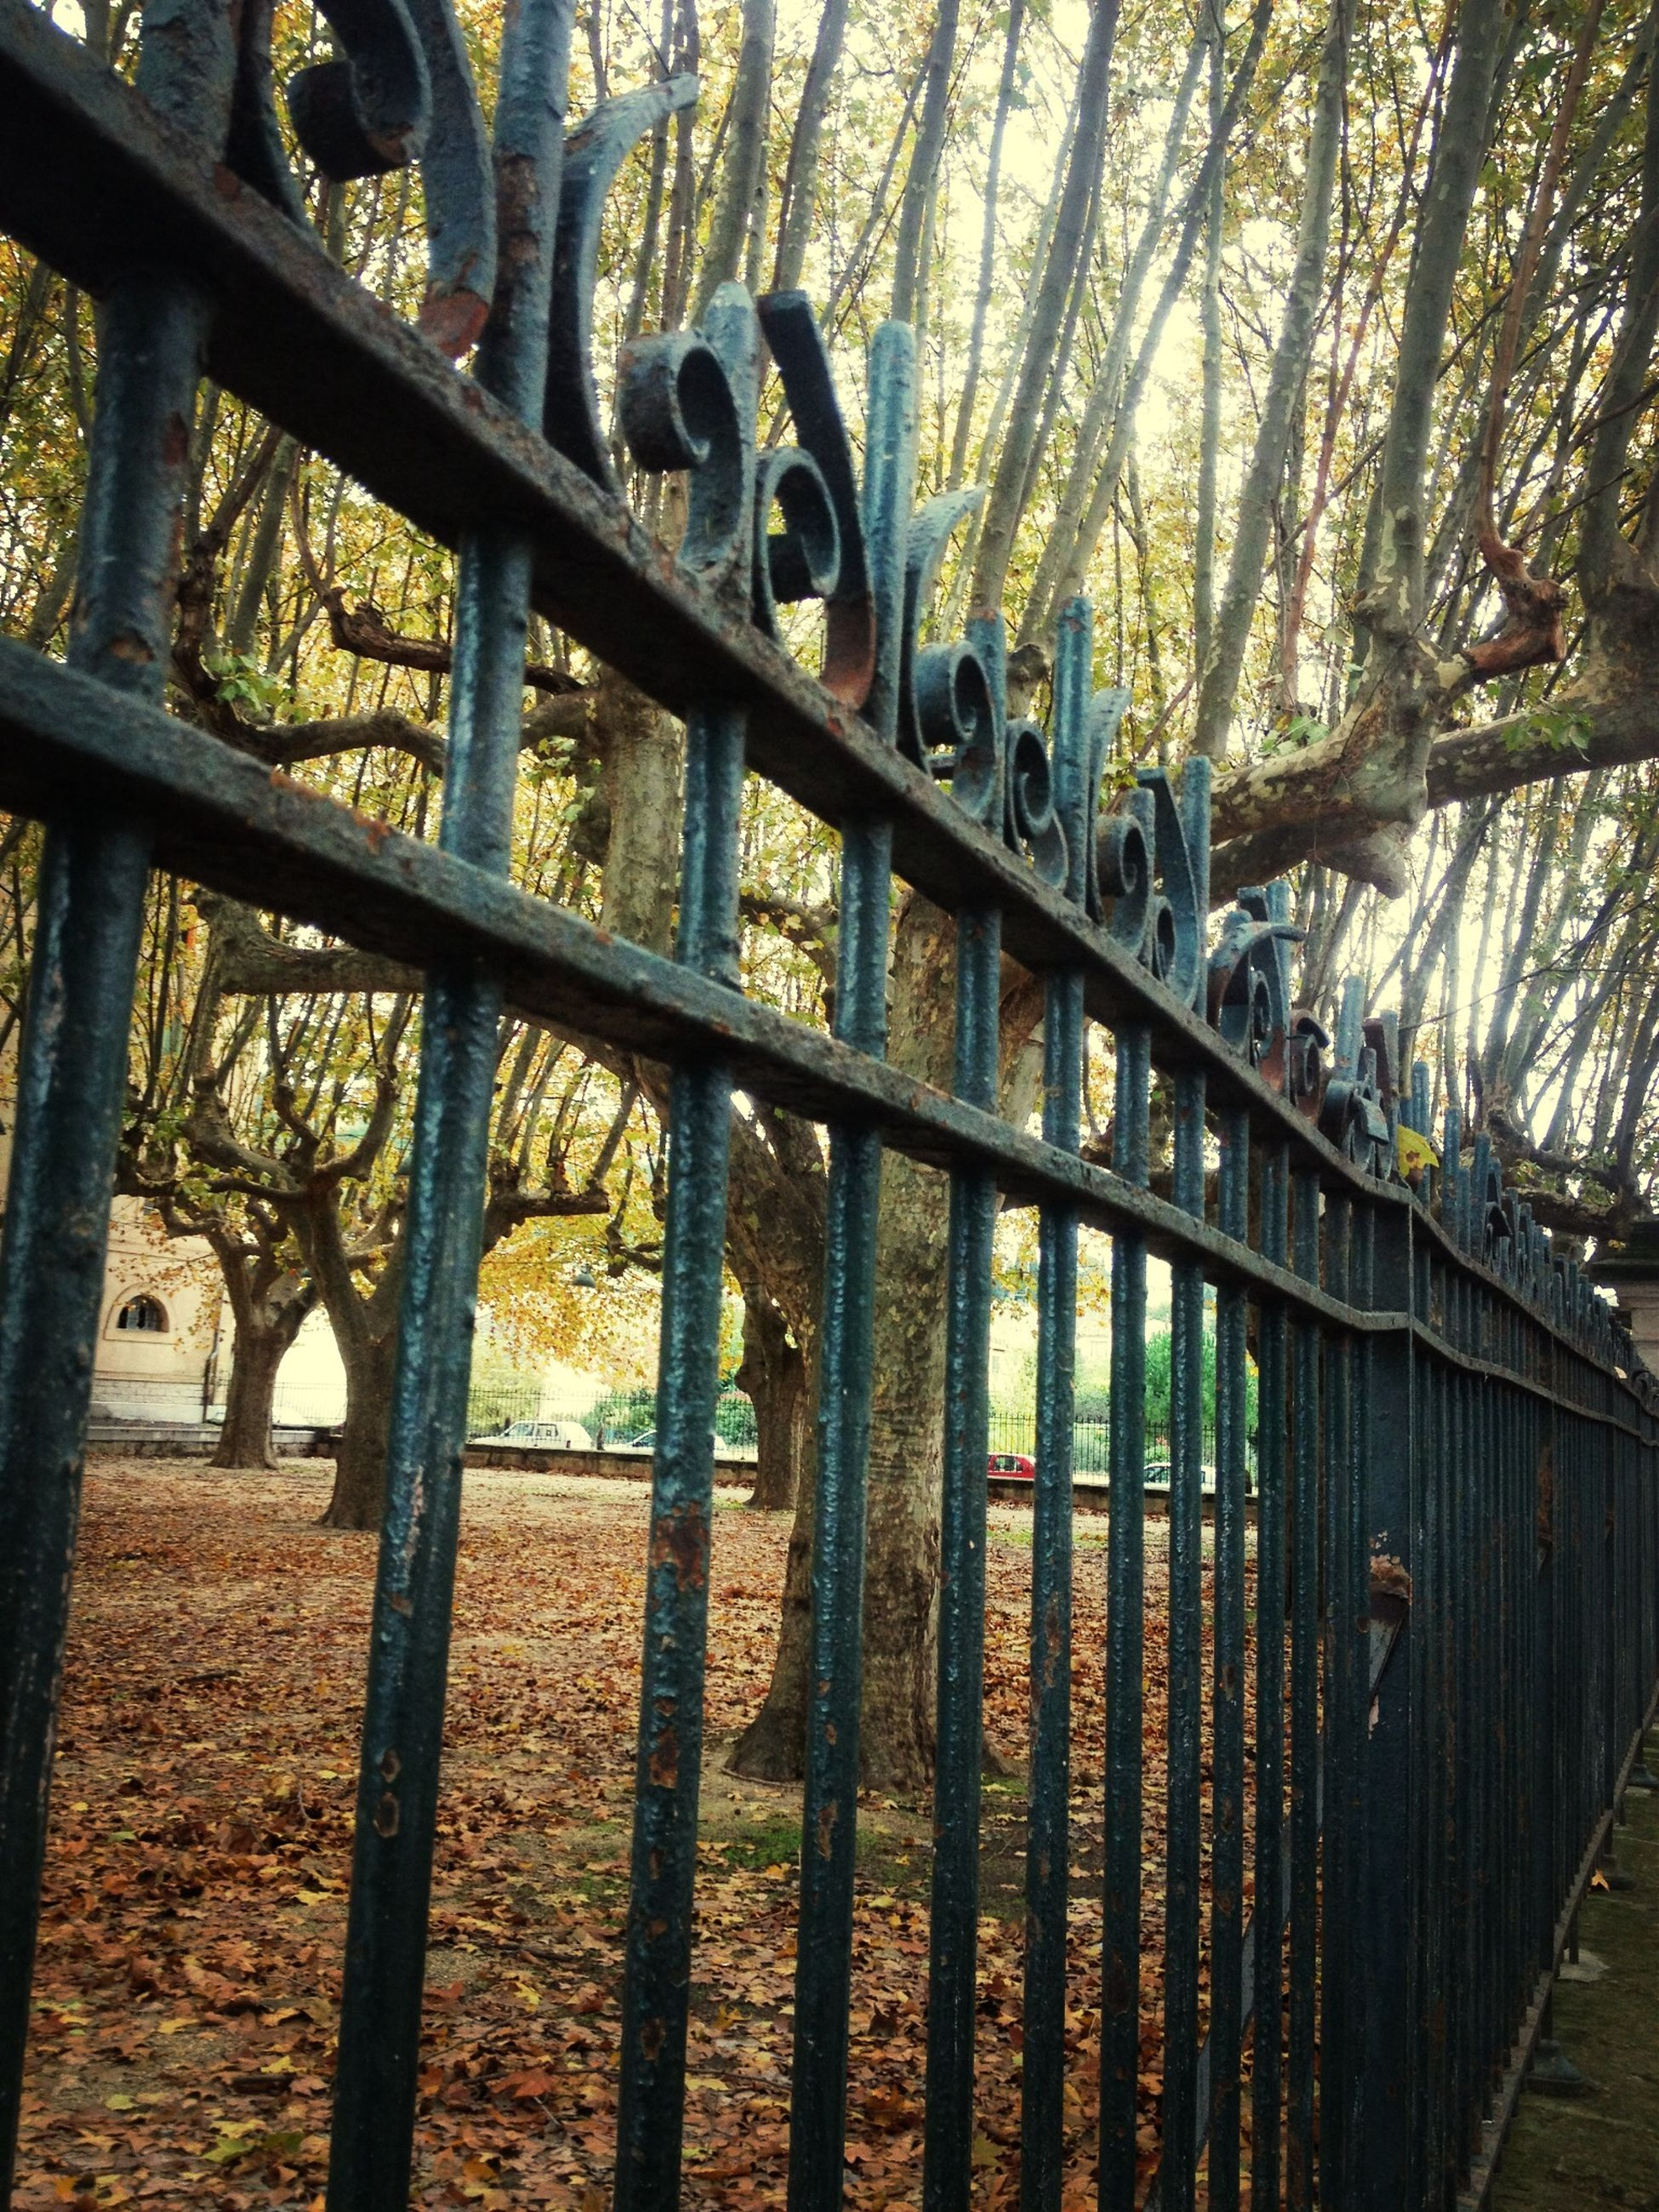 tree, metal, fence, railing, connection, metallic, bridge - man made structure, built structure, day, protection, safety, no people, tranquility, wood - material, outdoors, architecture, nature, sunlight, forest, security